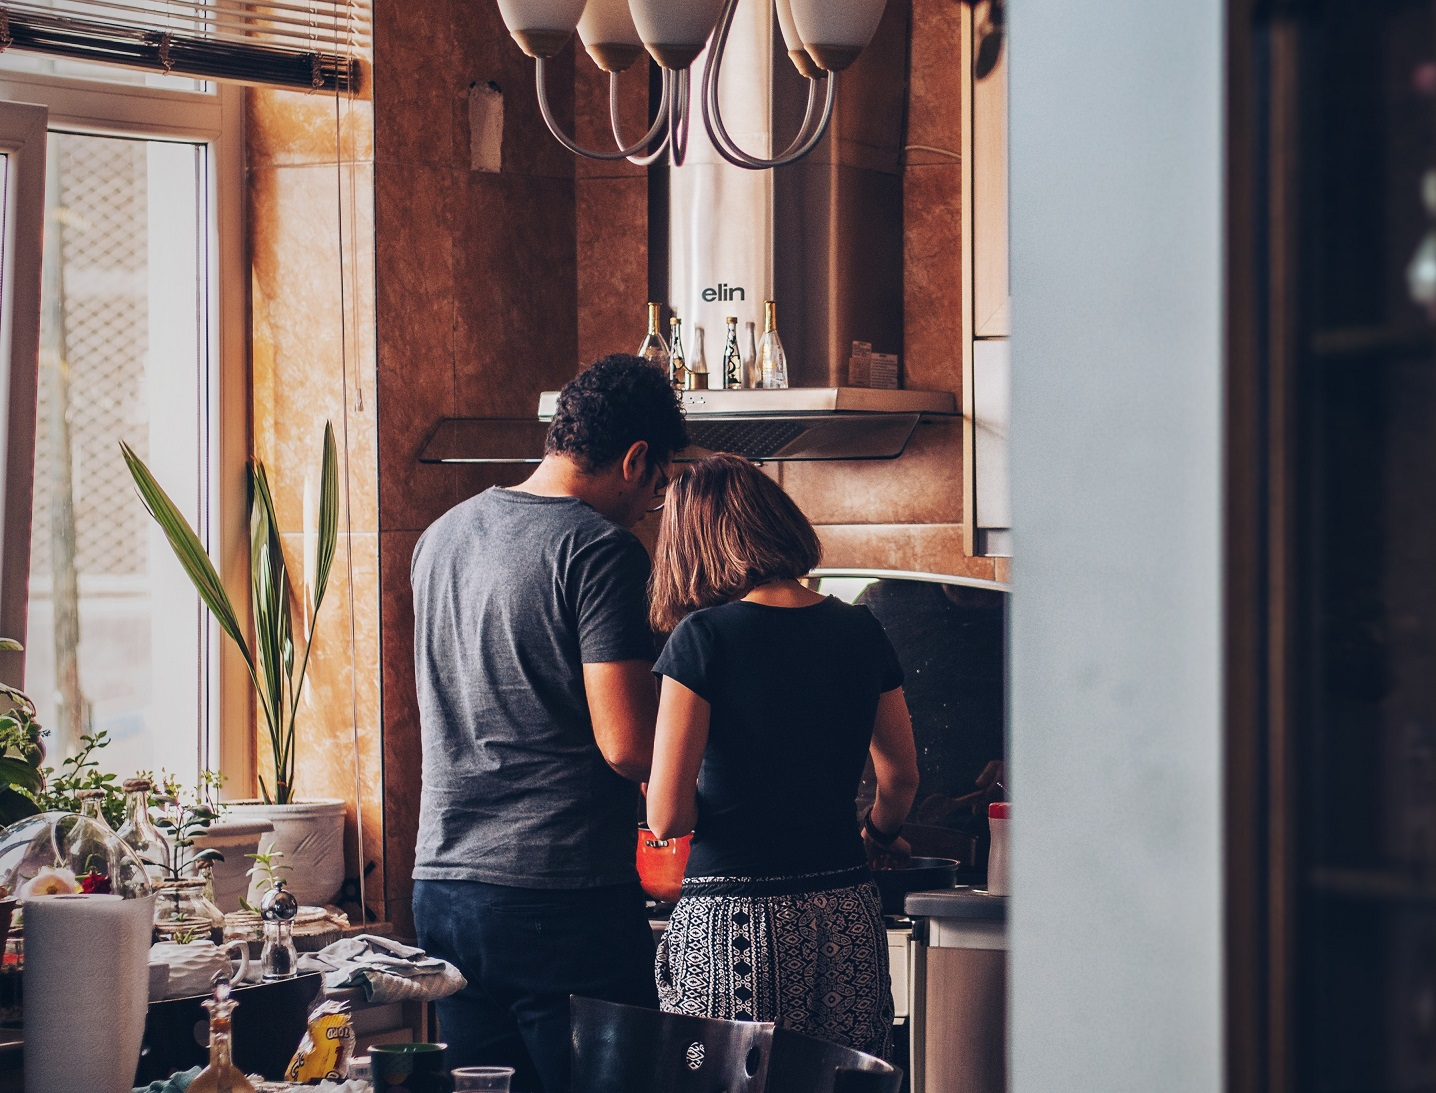 couple in kitchen standing side by side, ways to show love